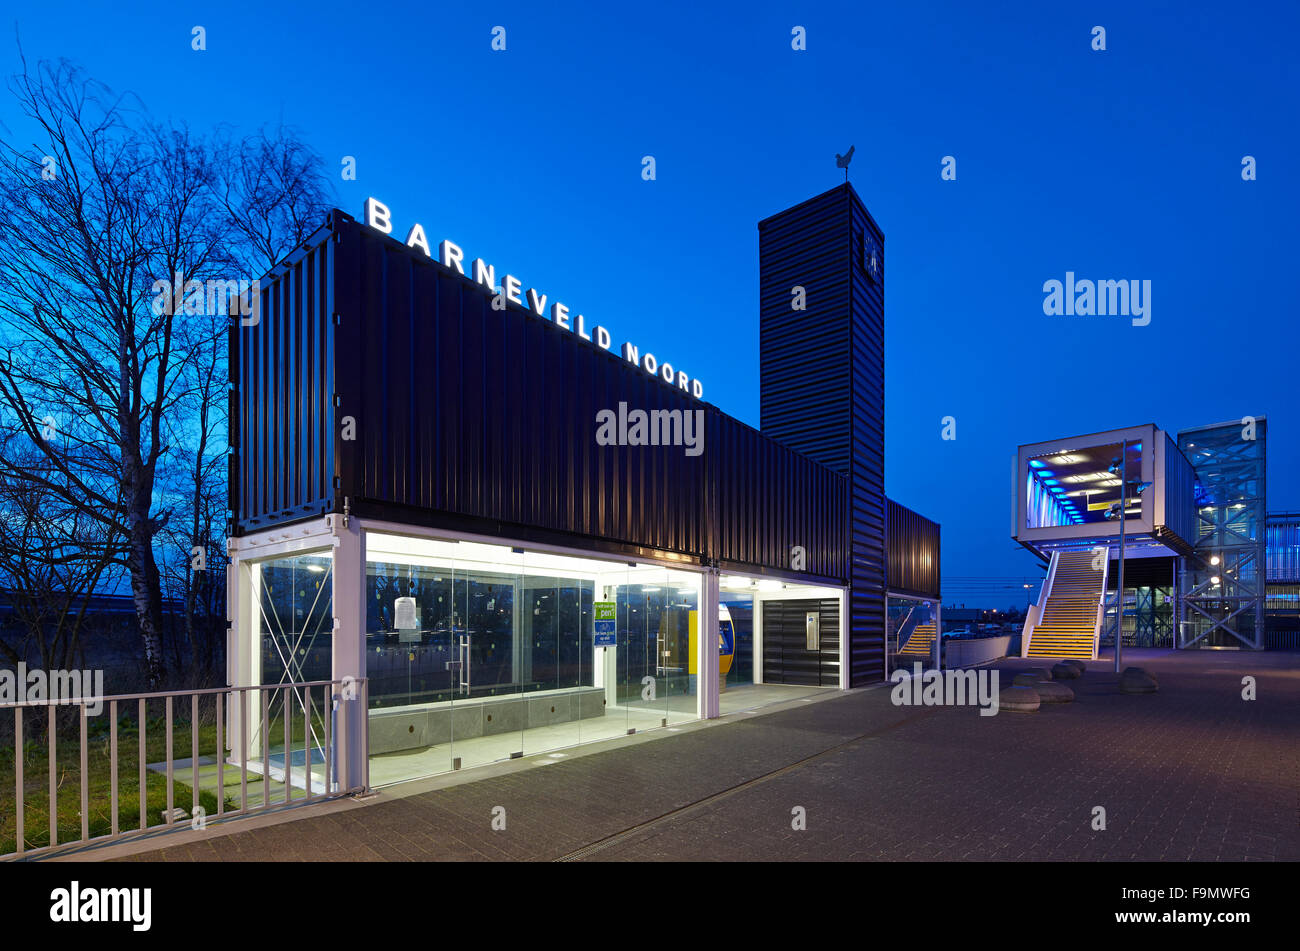 Barneveld Noord Station, a striking modern building with a central tower and glazed ground floor and black shuttering - Stock Image